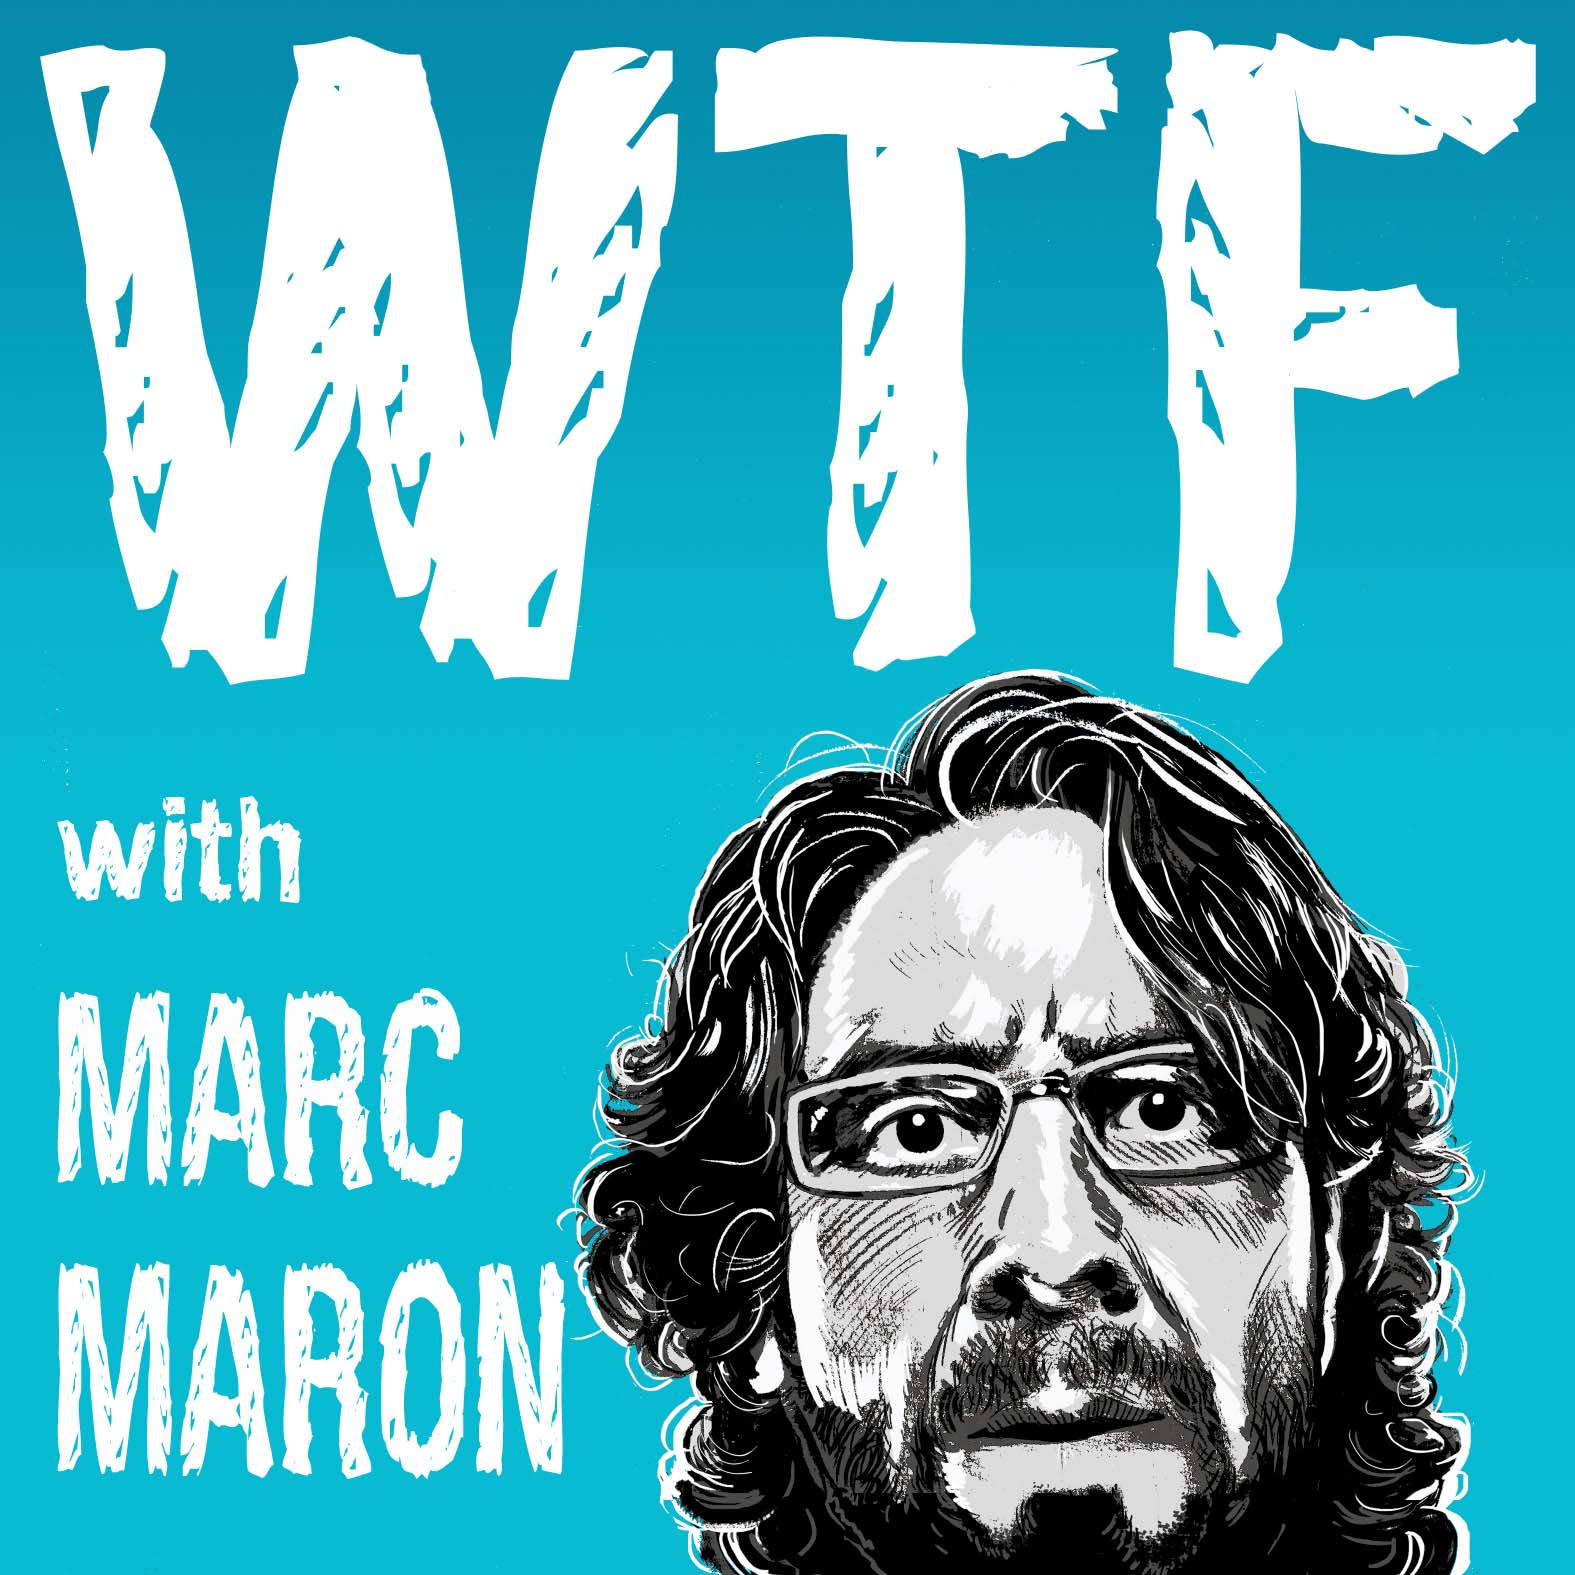 WTF with Marc Marcon